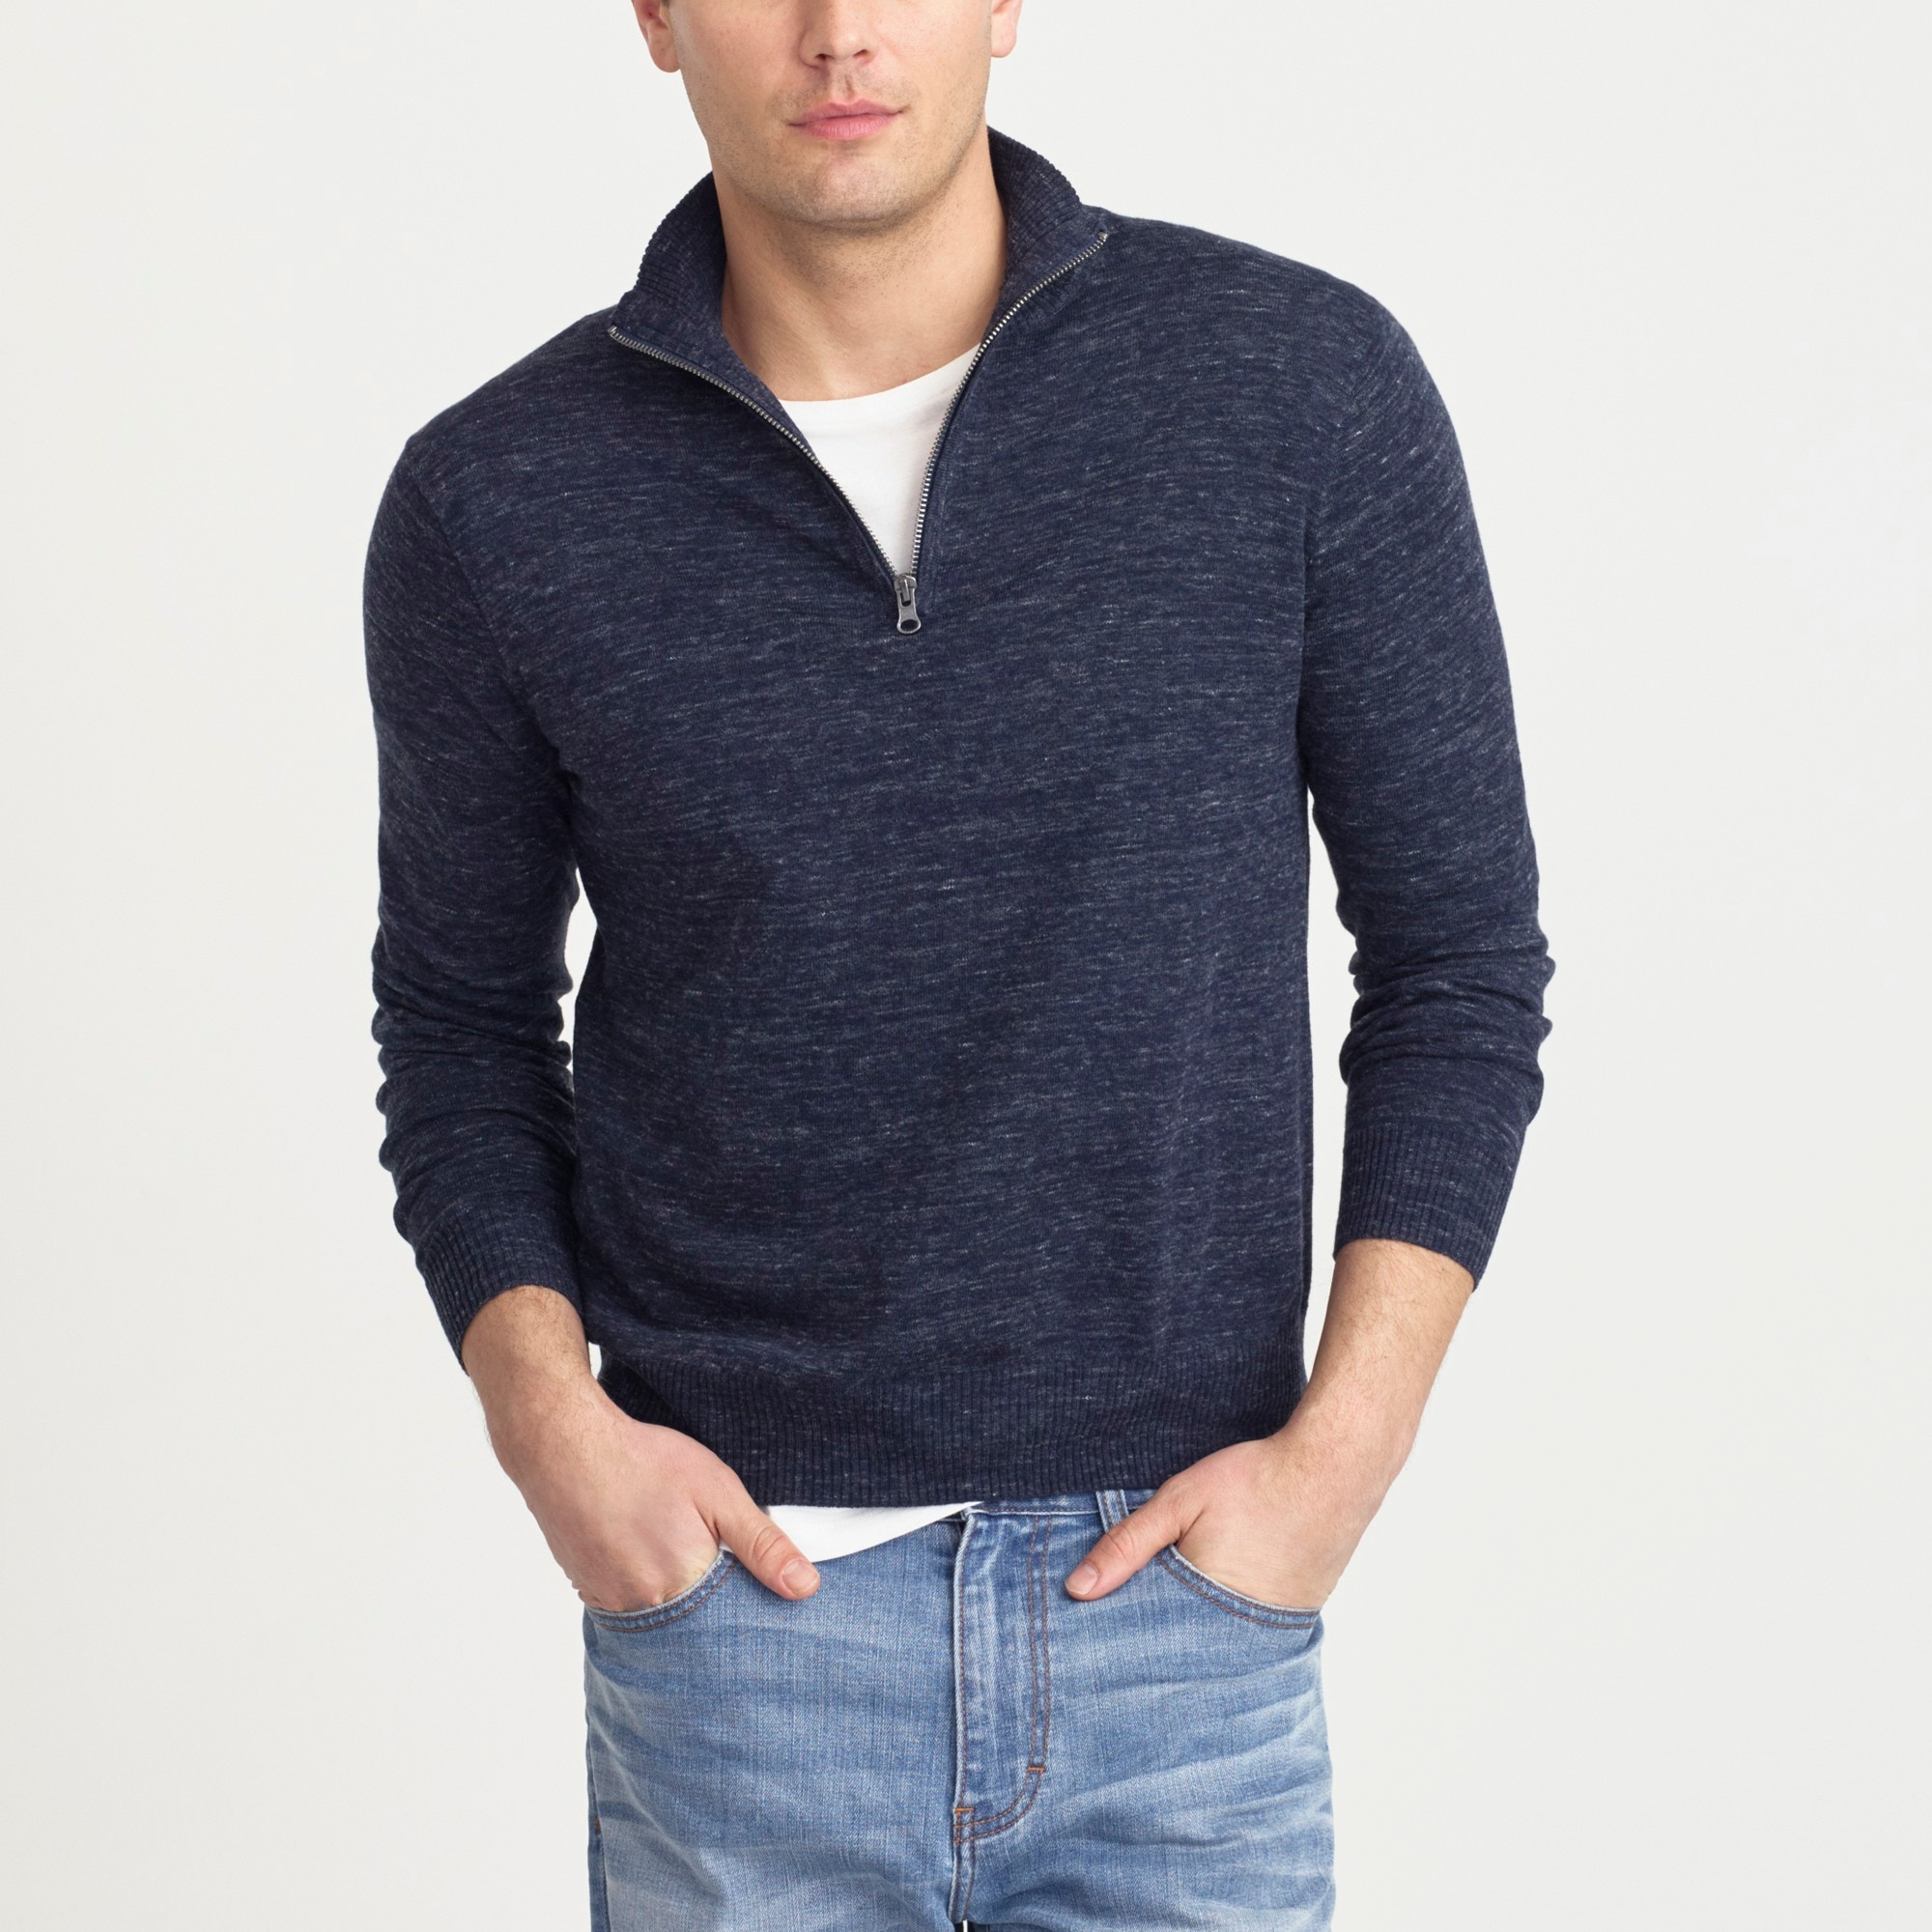 cotton-linen half-zip sweater : factorymen cotton